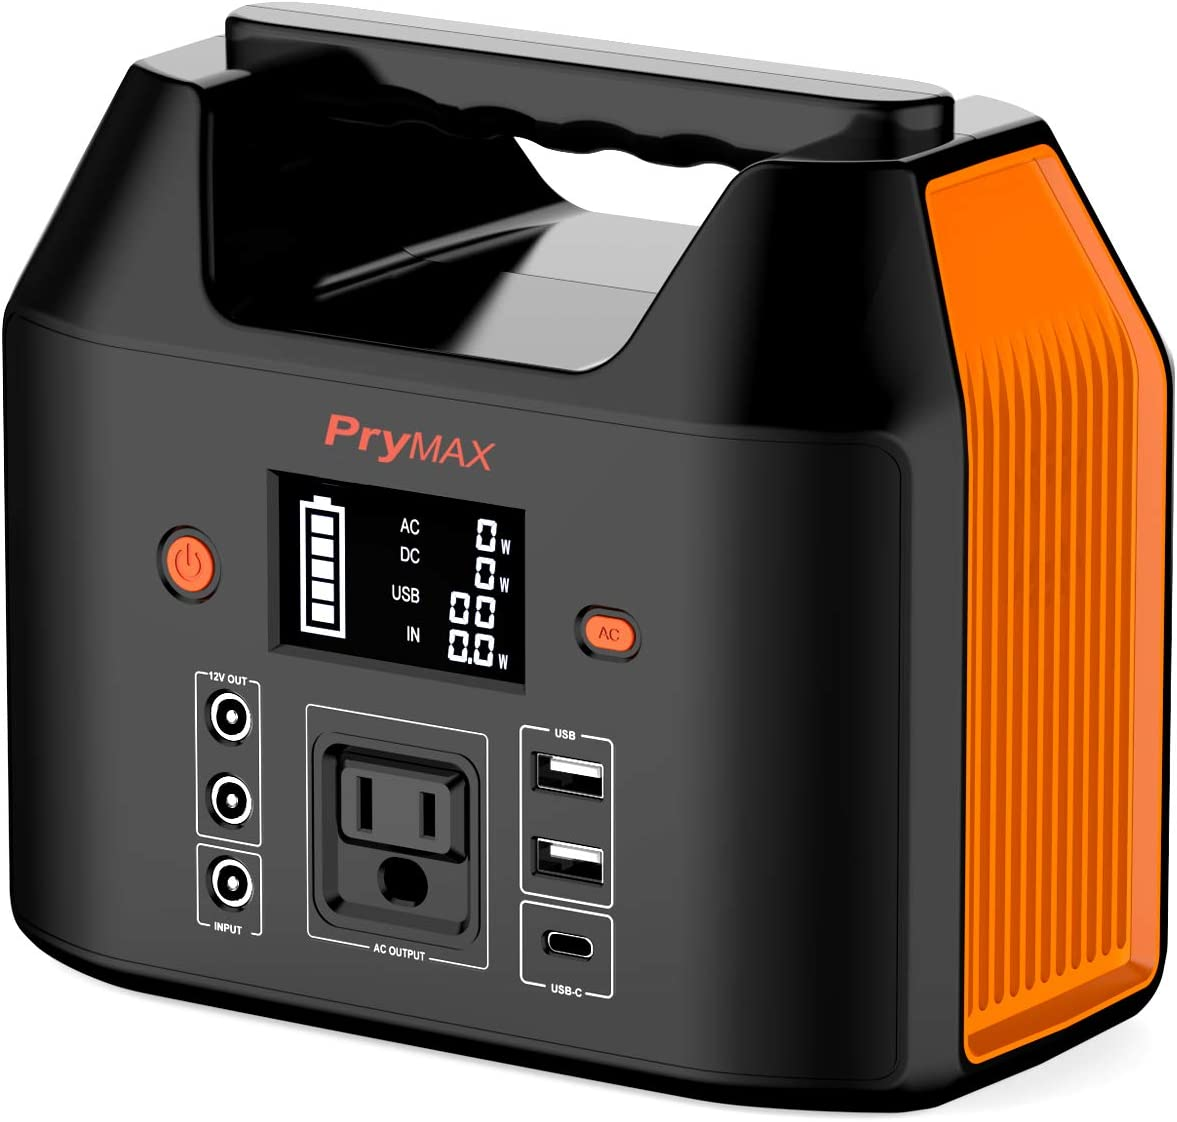 PRYMAX Portable Power Station, 178Wh Solar Generator CPAP Backup Battery Pack with LED Flashlight,110V/150W(Peak 200W) Pure Sine Wave,AC Outlet, QC3.0 USB,for Outdoors Camping Travel Emergency